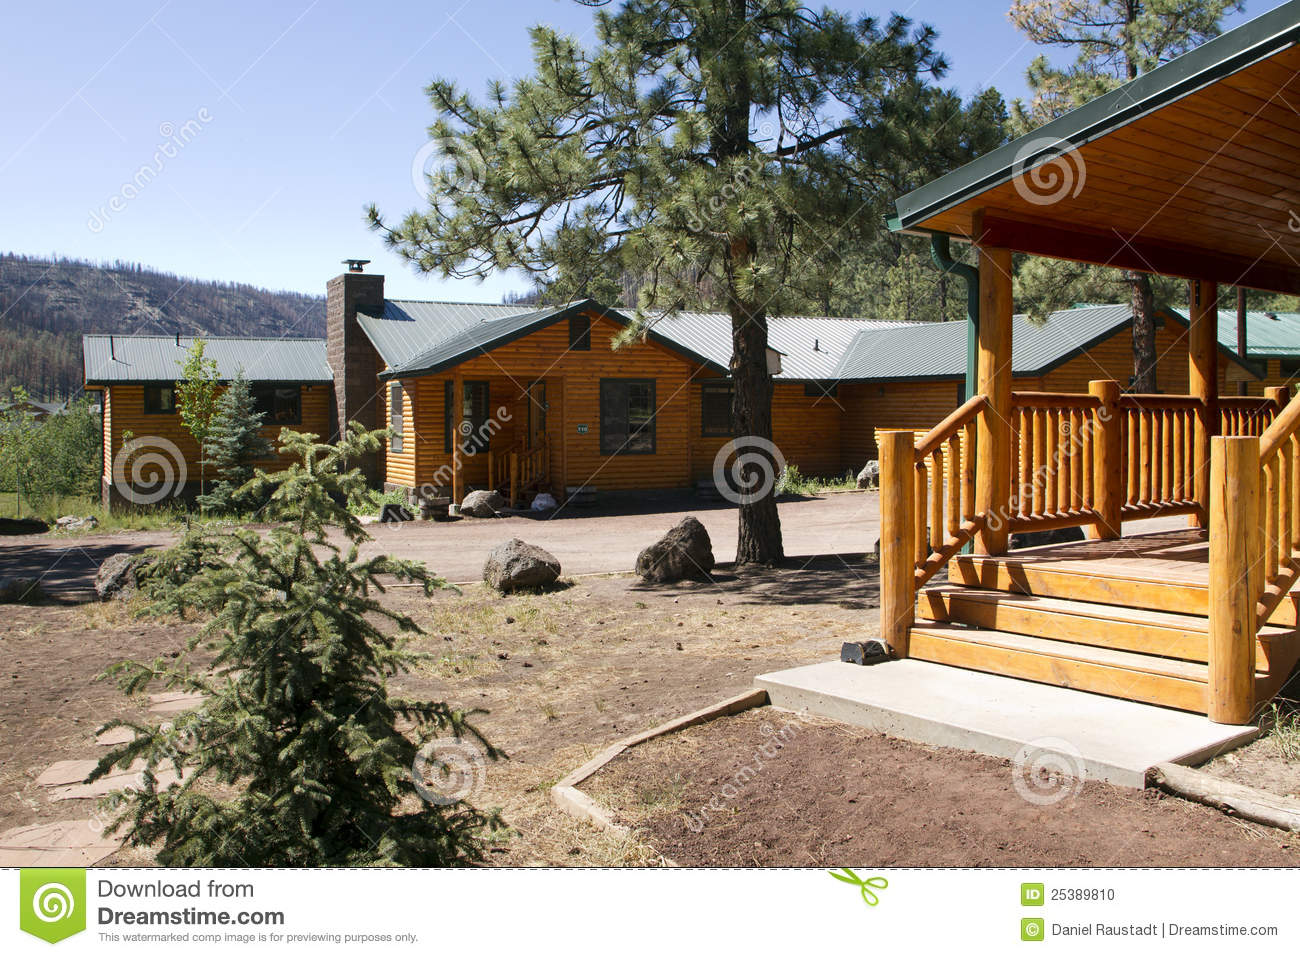 Summer vacation cabin in the mountain woods stock photo for Getaway cottage